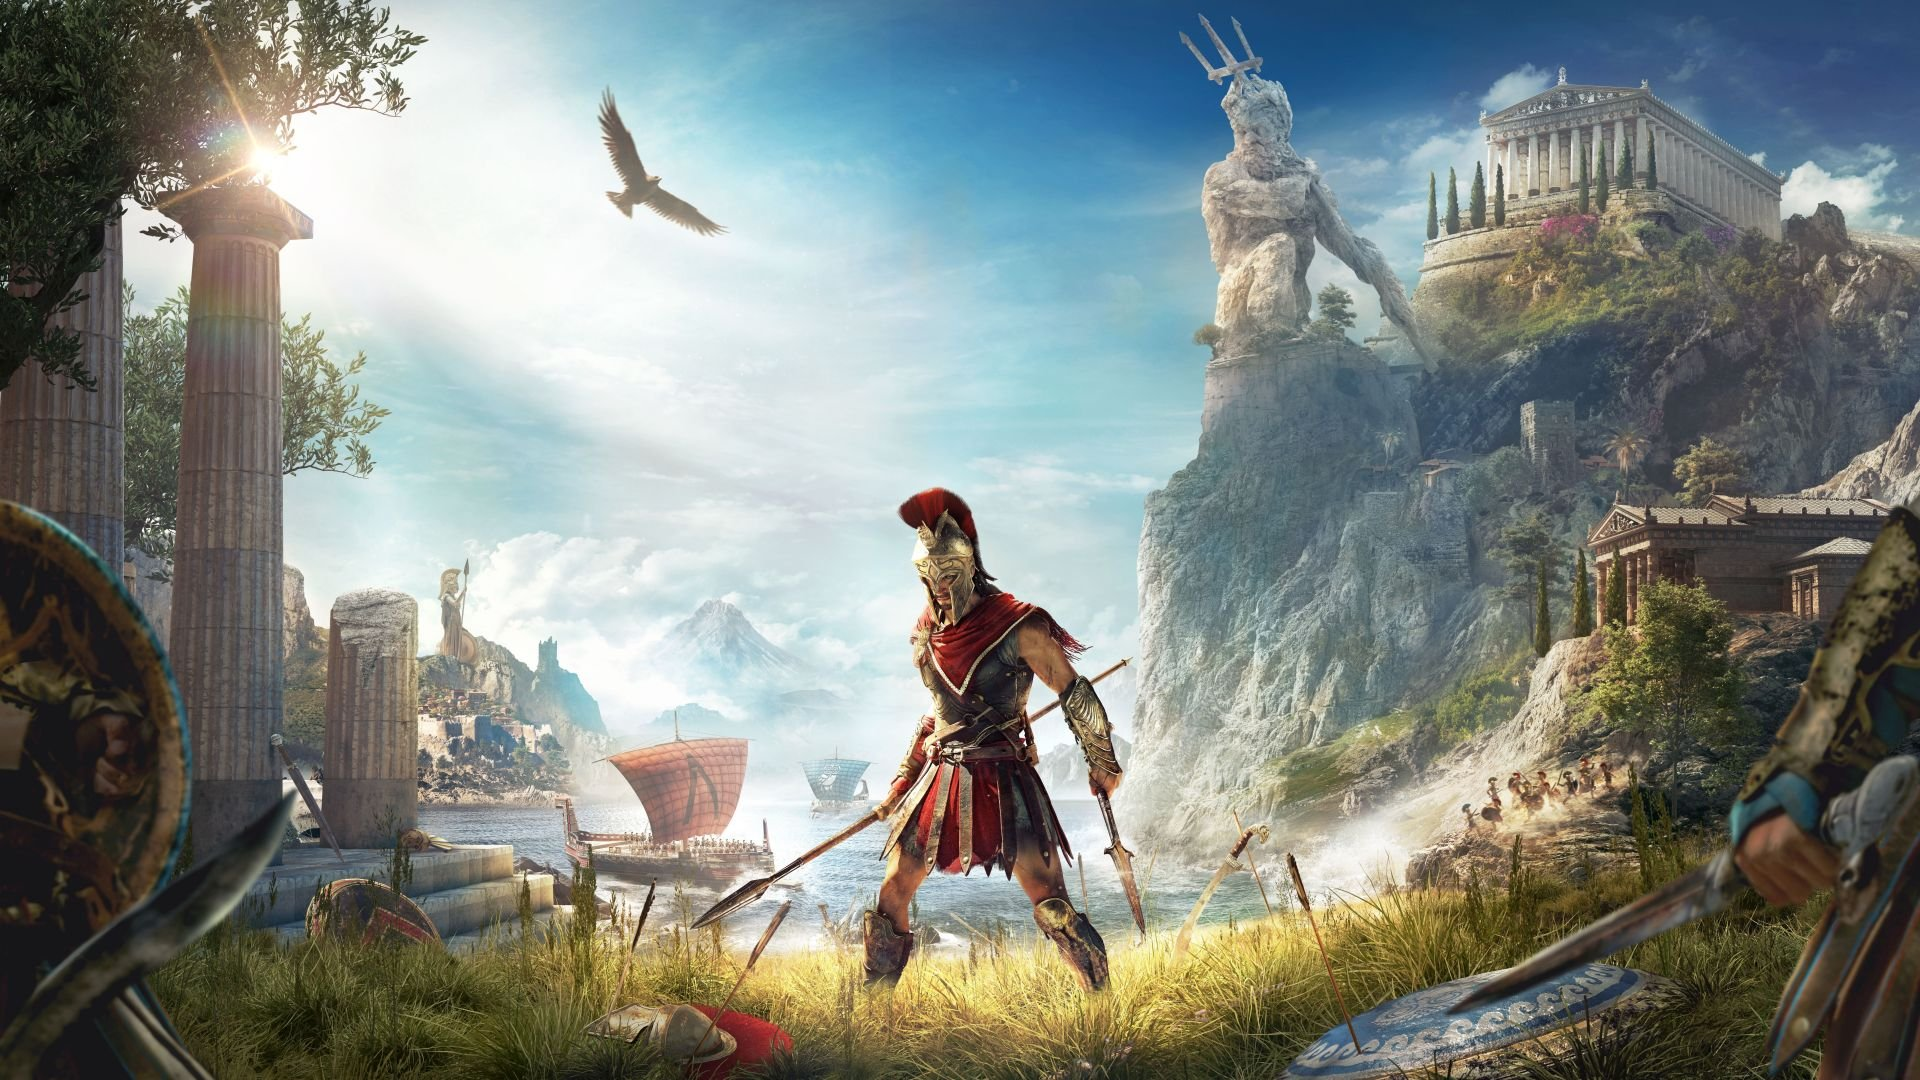 Listen to 'Legend of the Eagle Bearer', Assassin's Creed Odyssey's Main Theme